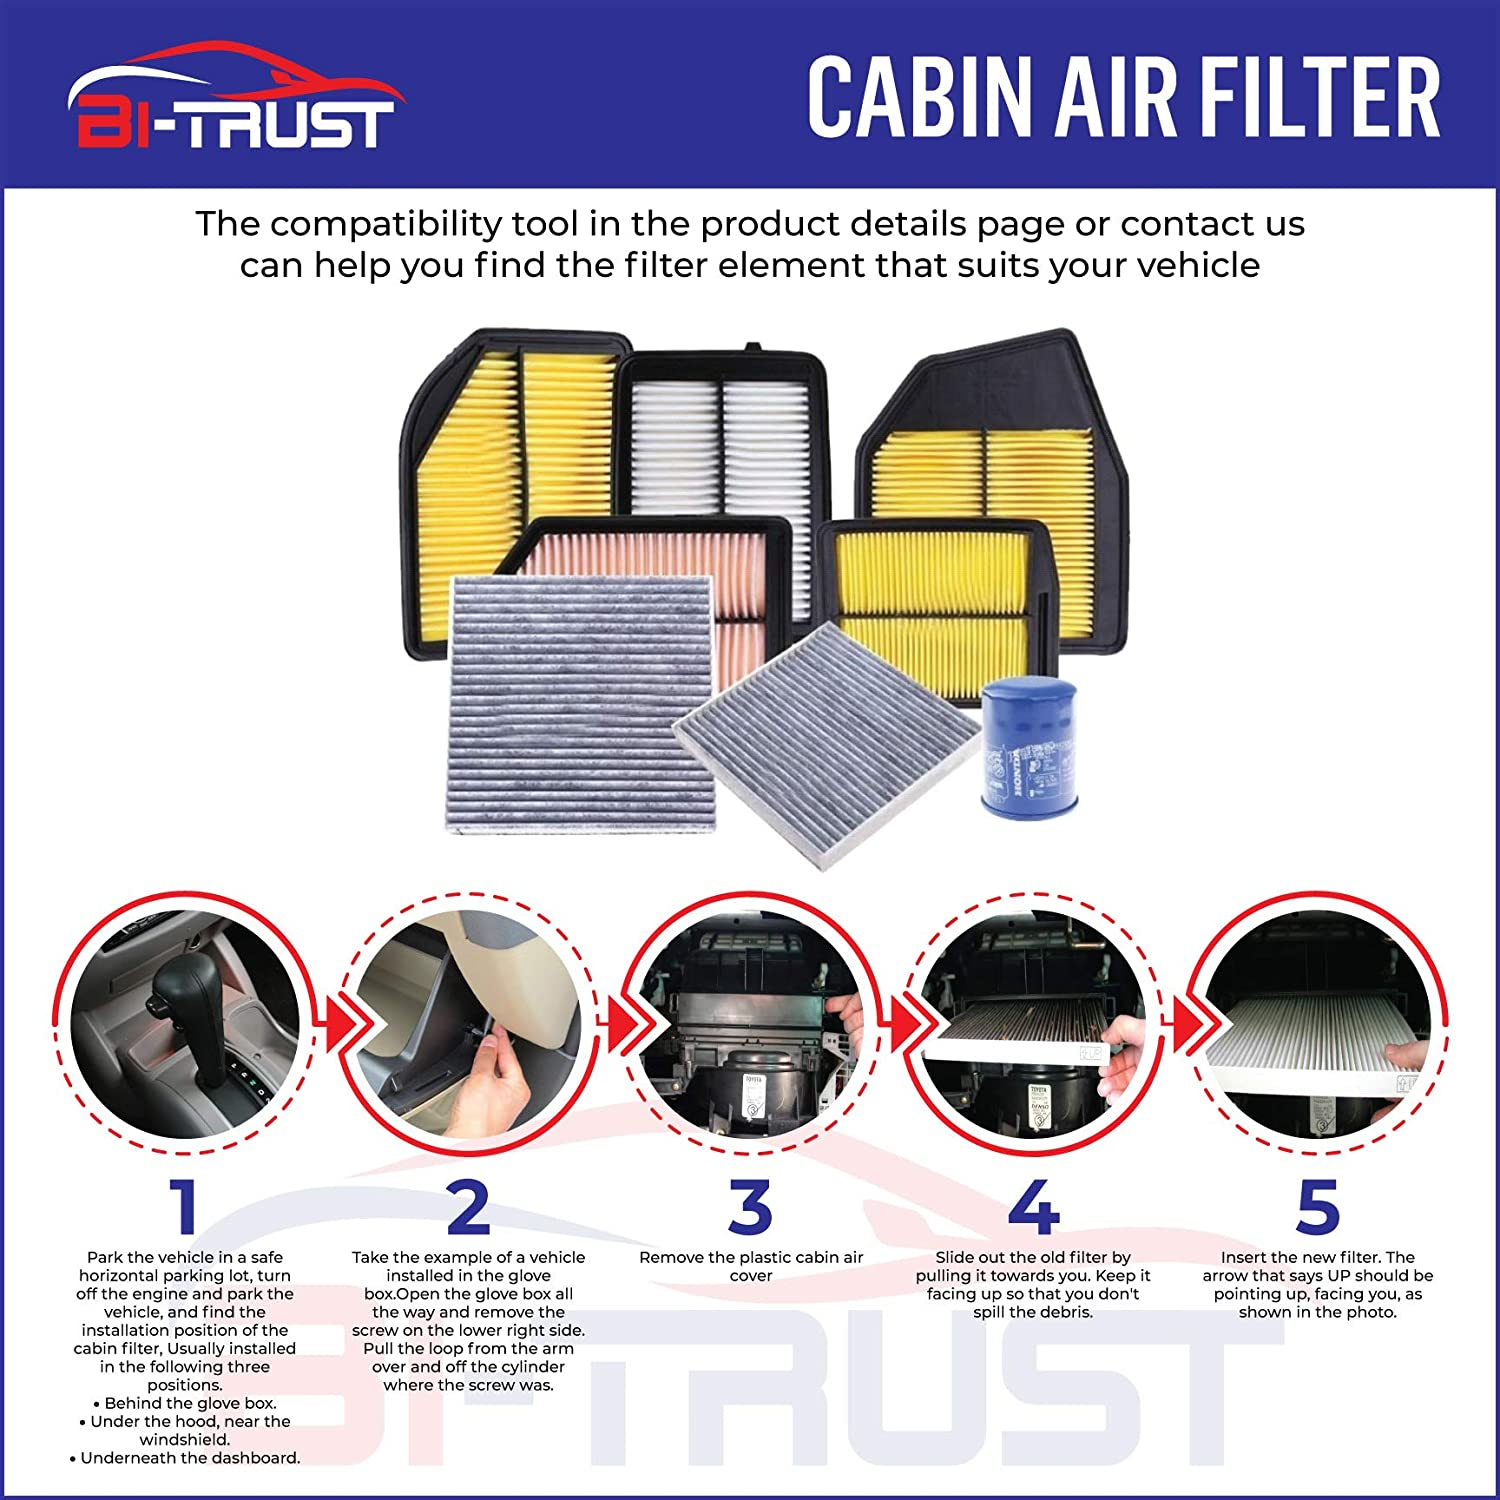 Replacement for Nonwoven Fabric Cabin Air Filter for Jeep Wrangler 2011-2018 3.6l 3.8L Bi-Trust KLC00009 CF11777